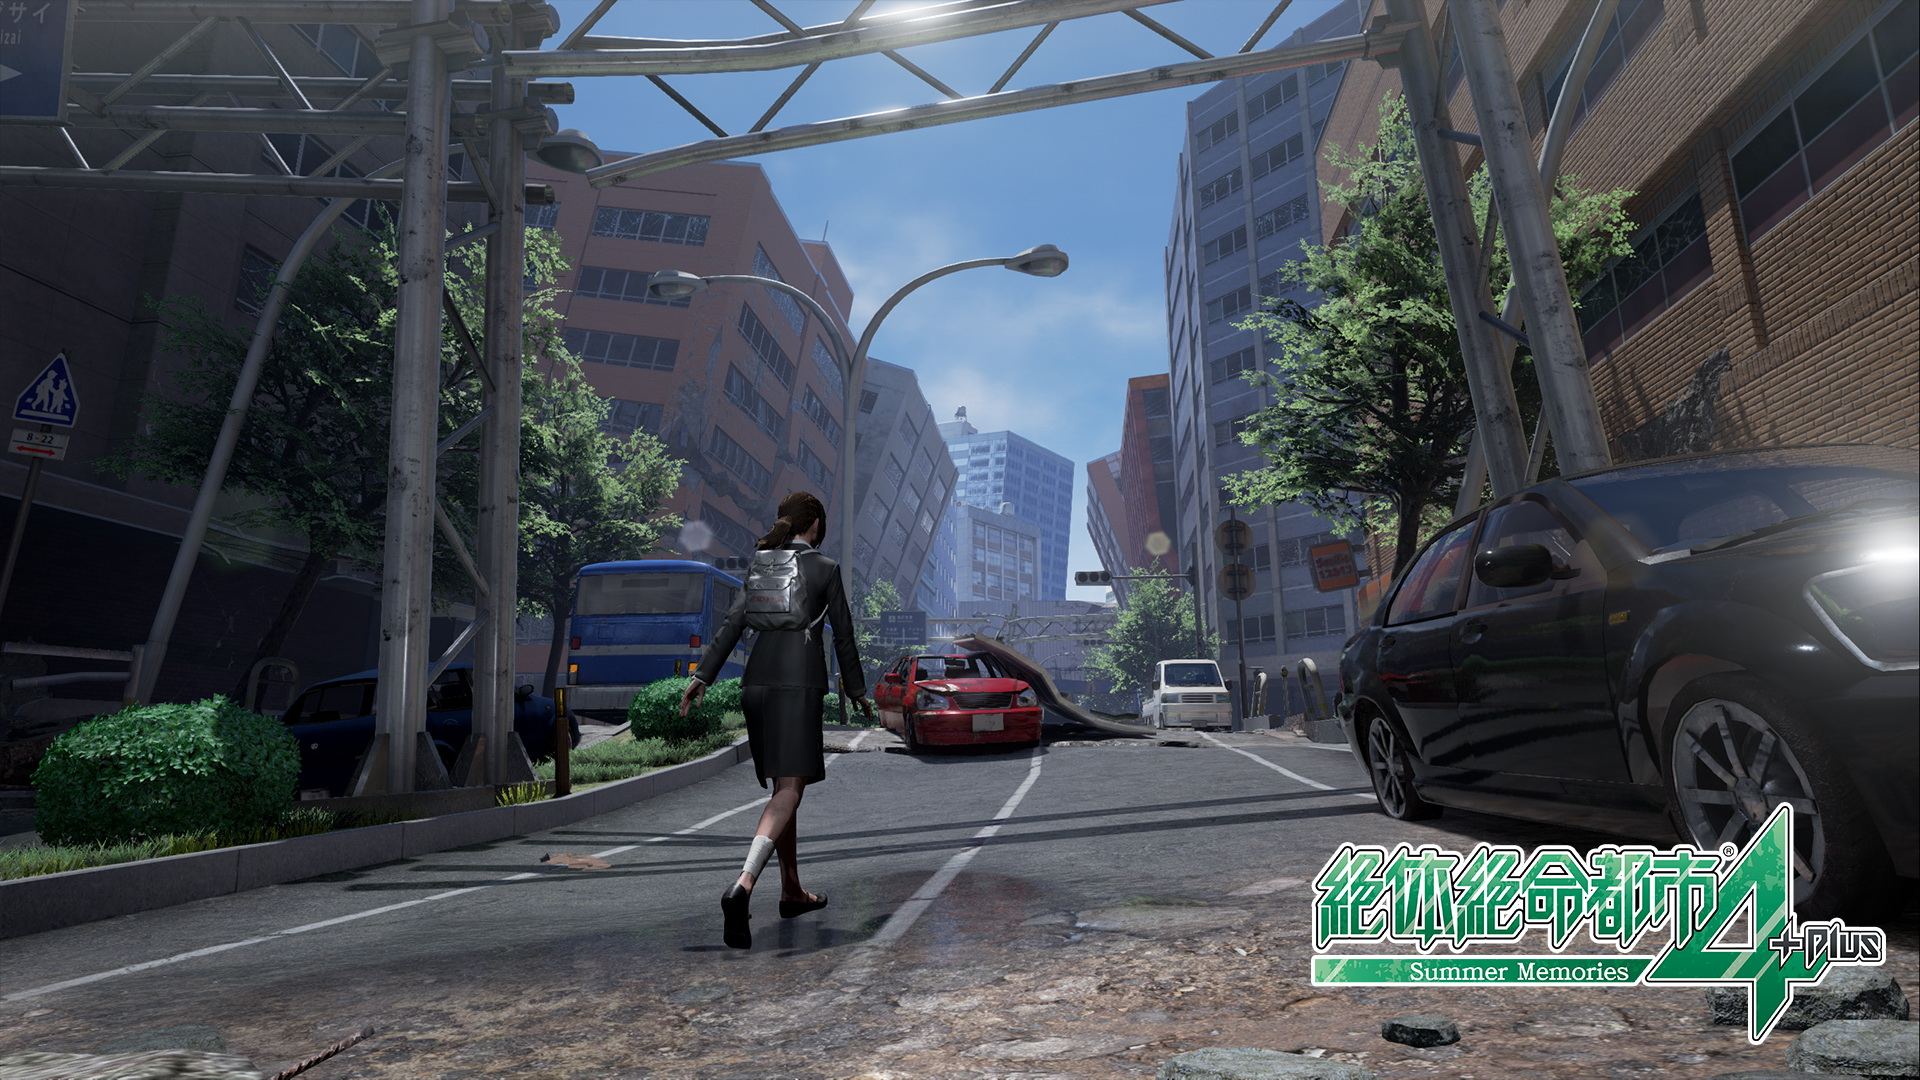 First Disaster Report 4 Plus: Summer Memories Trailer